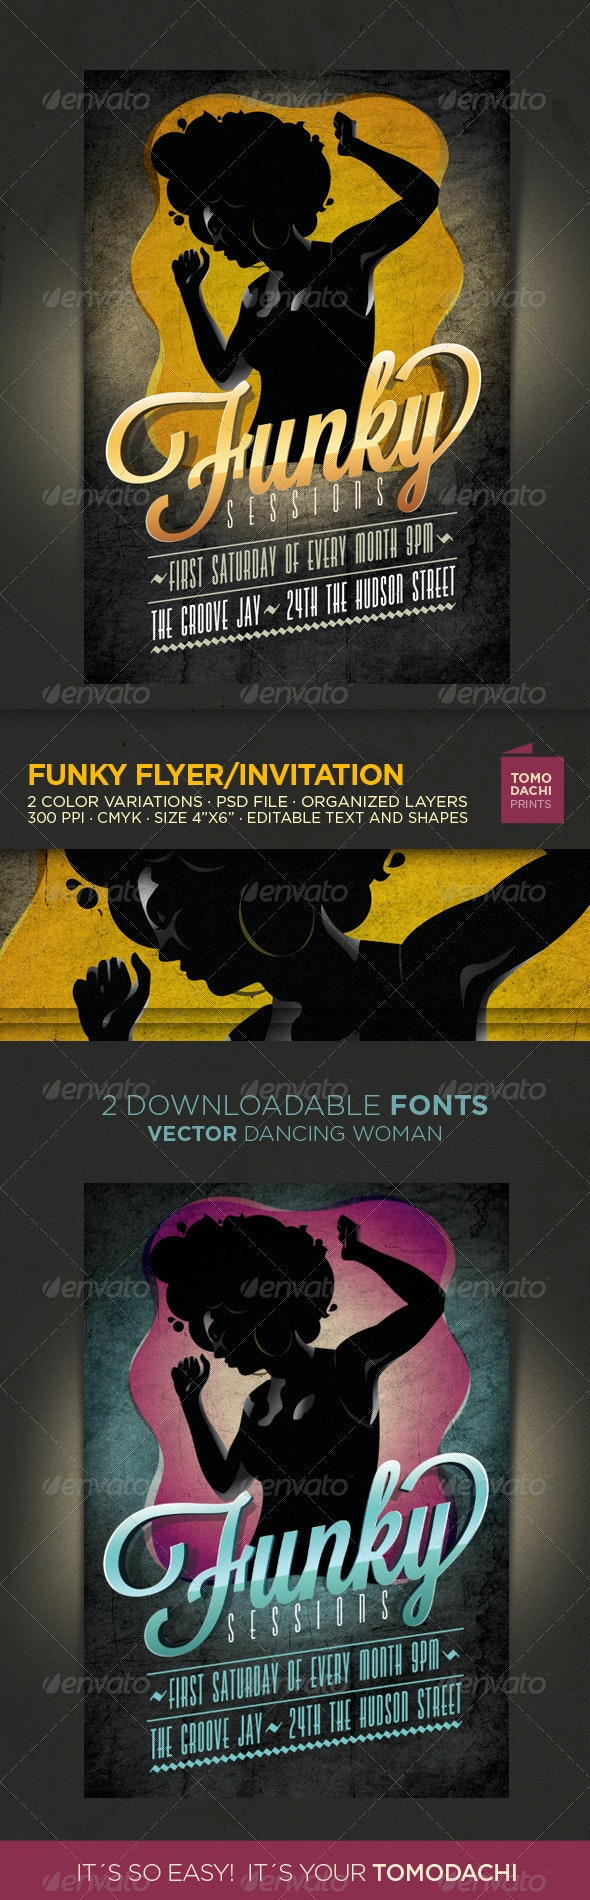 Funky Flyer/Invitation - Events Flyers